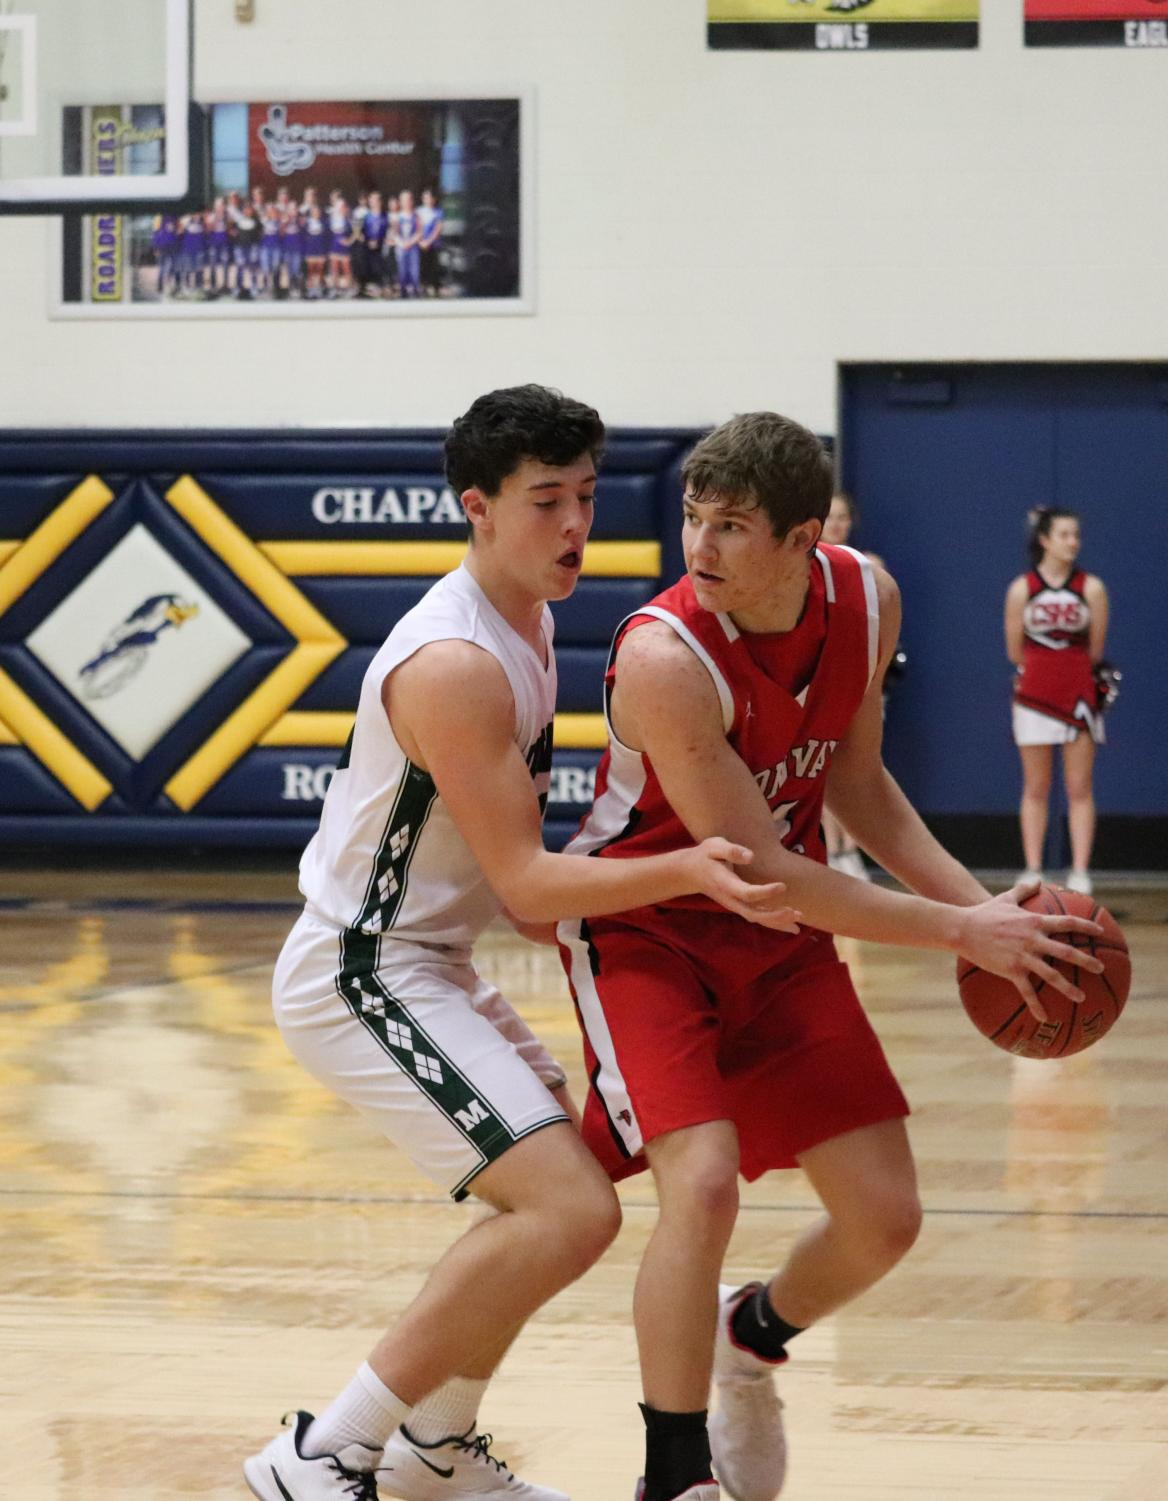 During the final game of the Chaparral tournament, junior Heath Hilger looks for an open player to pass the ball to. The boys placed sixth overall at the tournament after playing Clearwater, Sunrise Academy and Mulvane.